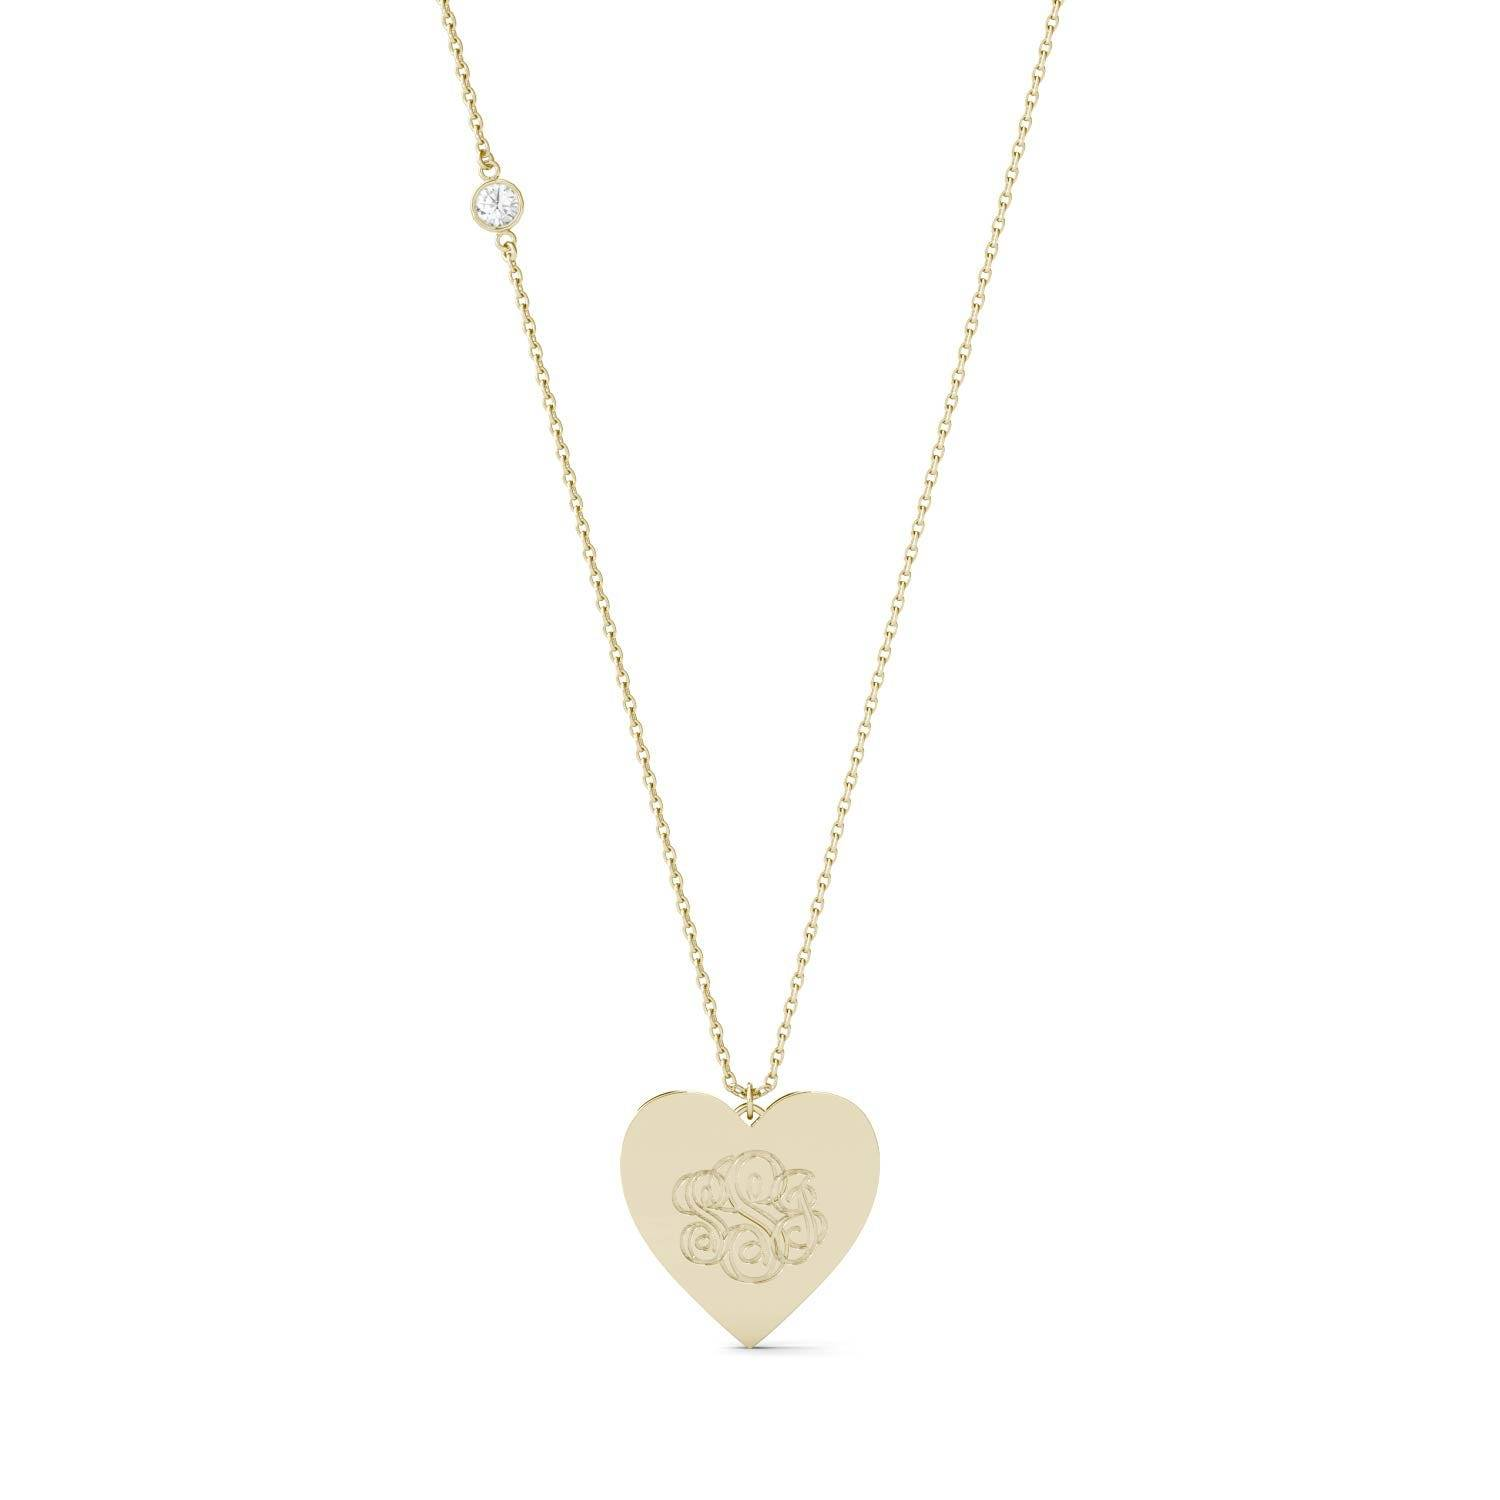 Charles & Colvard Personalized Monogram Heart Necklace in 14K Yellow Gold, 0.10CTW Round Forever One Moissanite Accent Stones Charles & Colvard  - Yellow Gold - Size: One Size